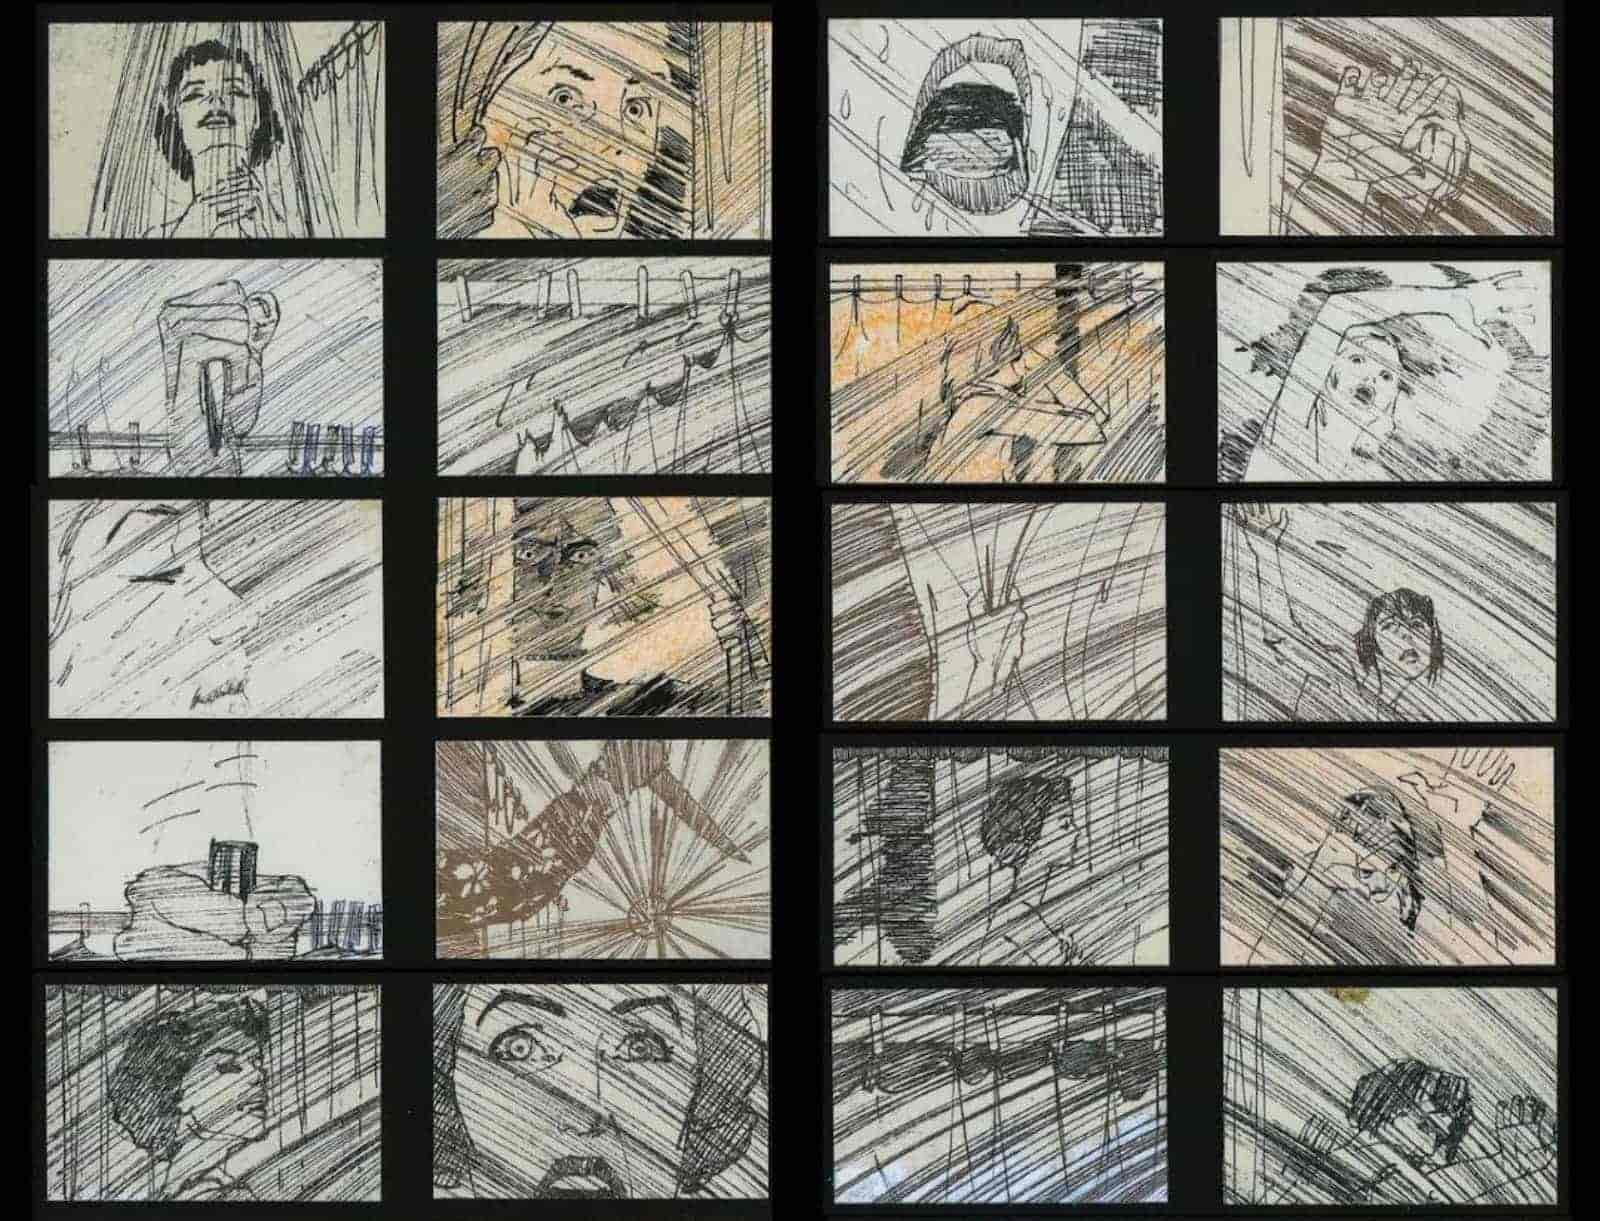 Film Storyboard Examples - Storyboard Sample Alfred Hitchcock - Psycho - StudioBinder